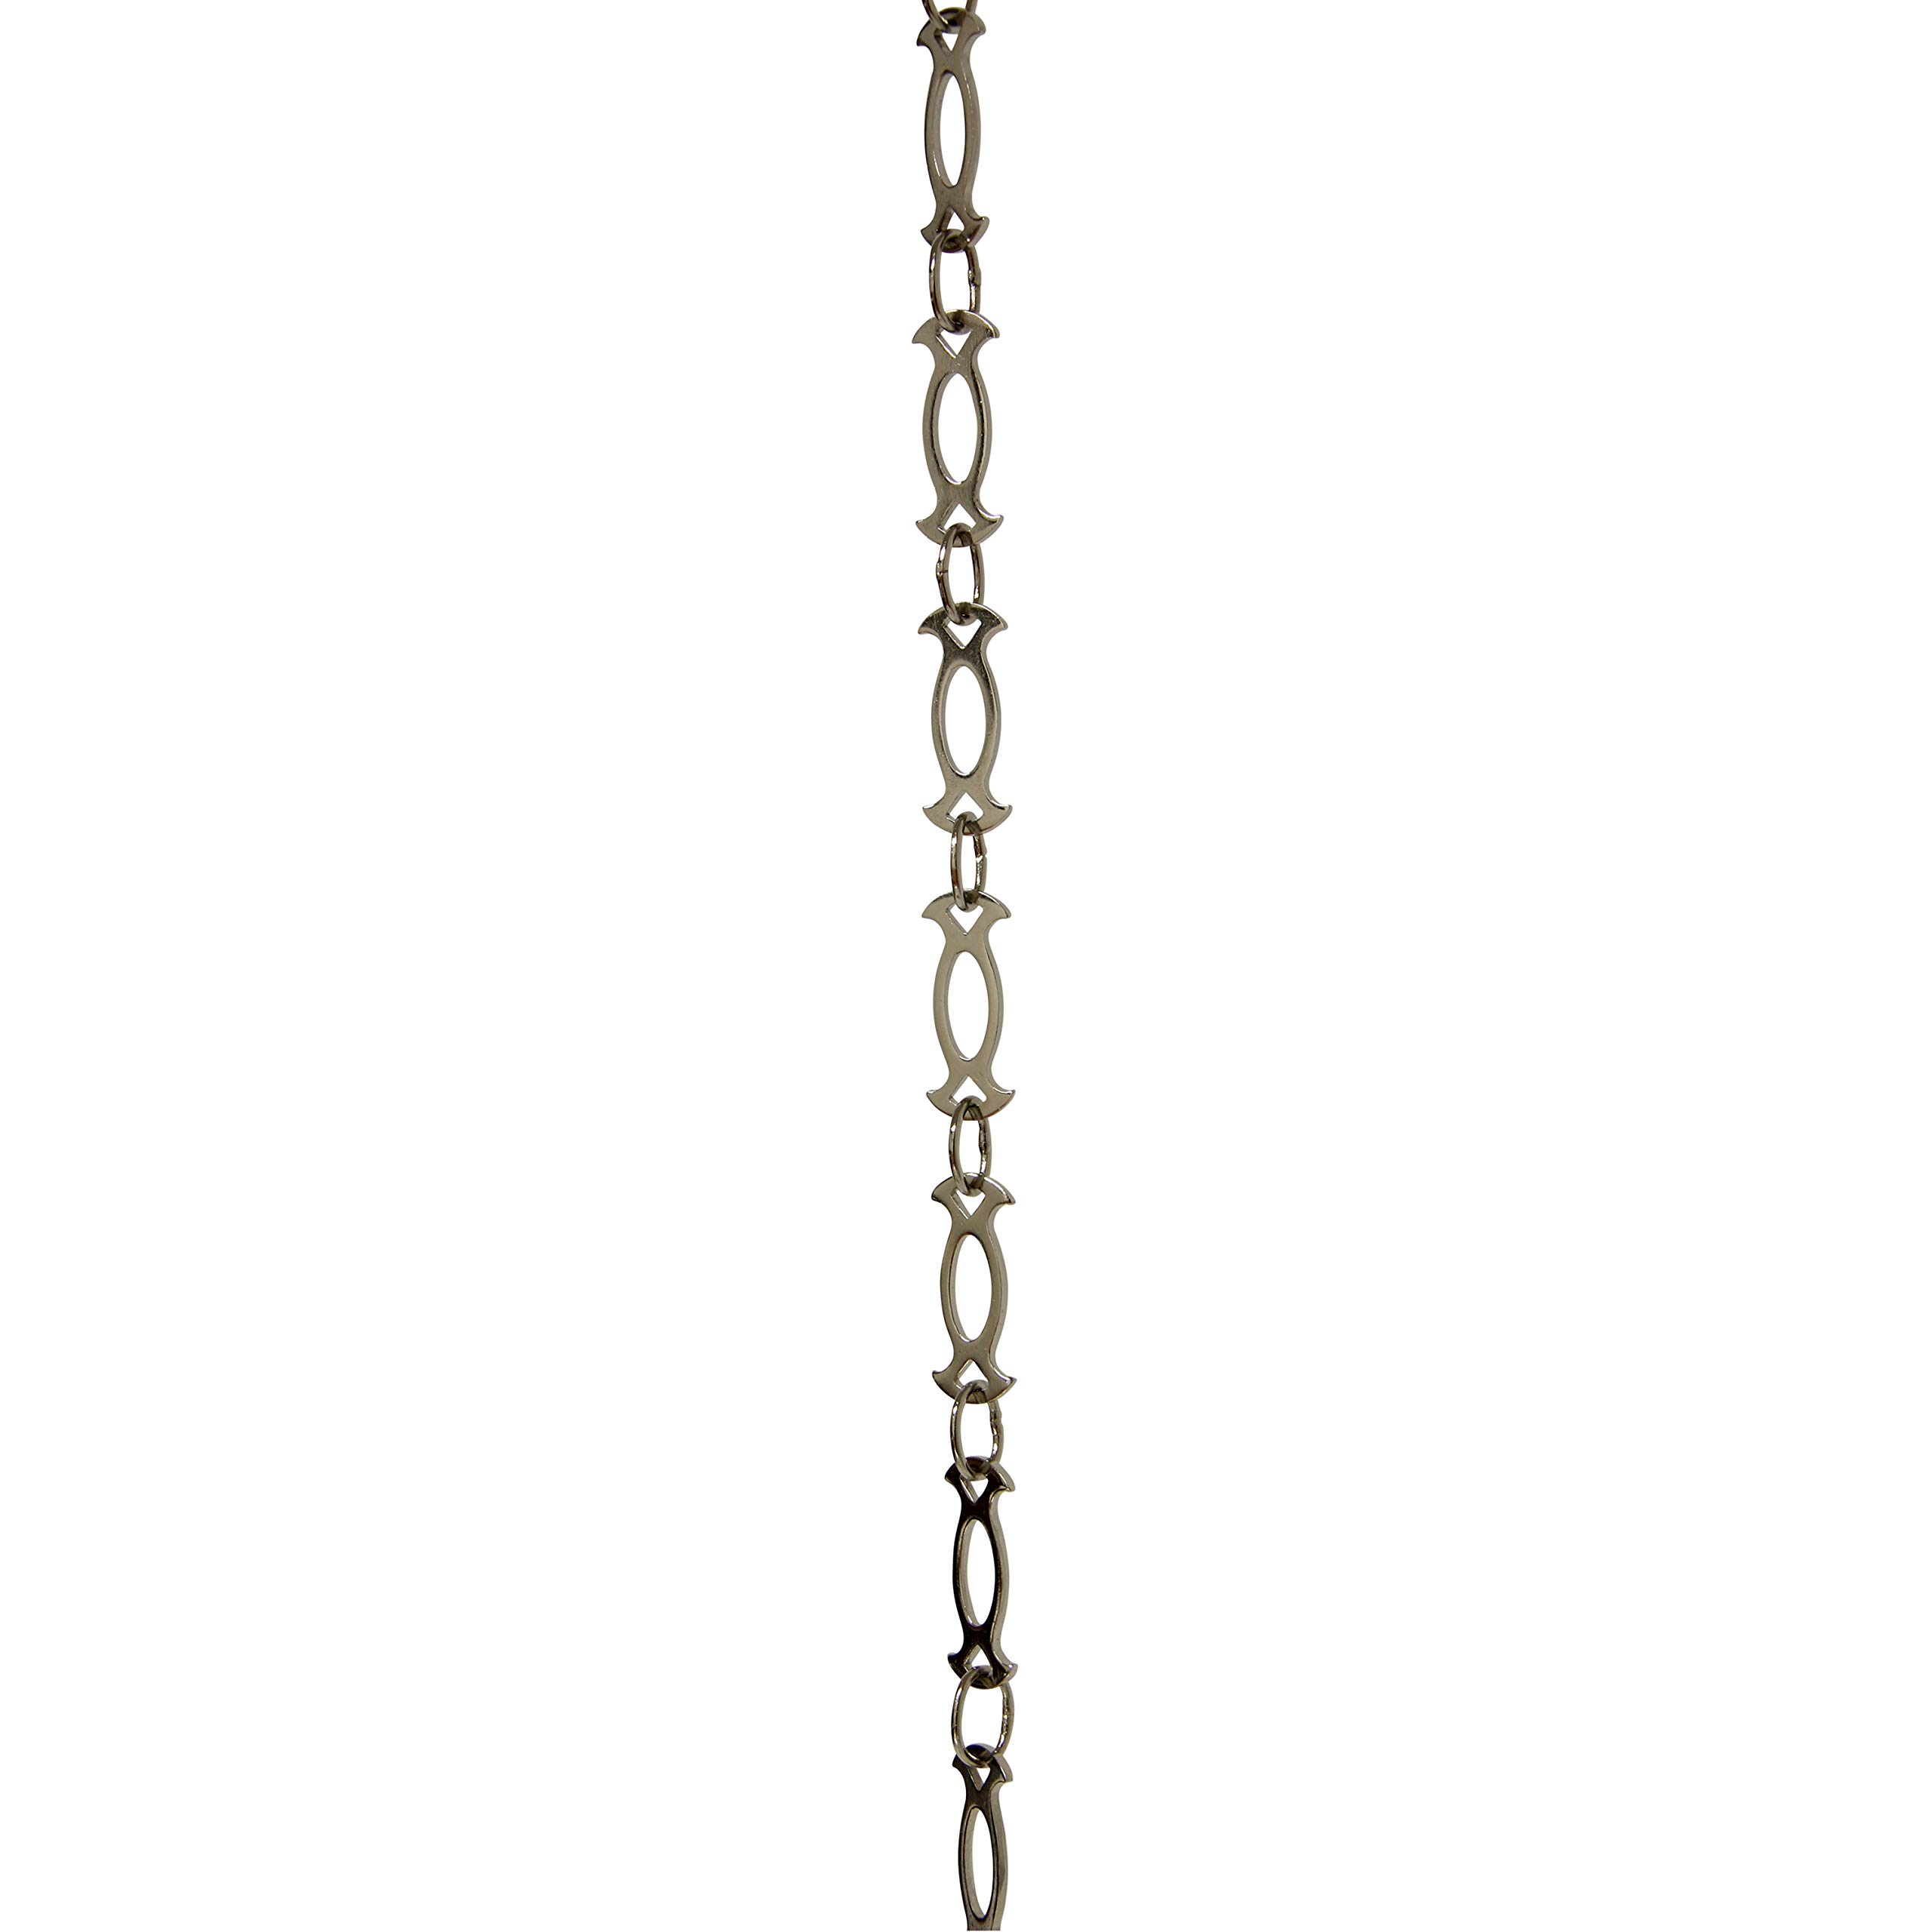 RCH Hardware CH-47-PN-3 Fixture Chain Polished Nickel